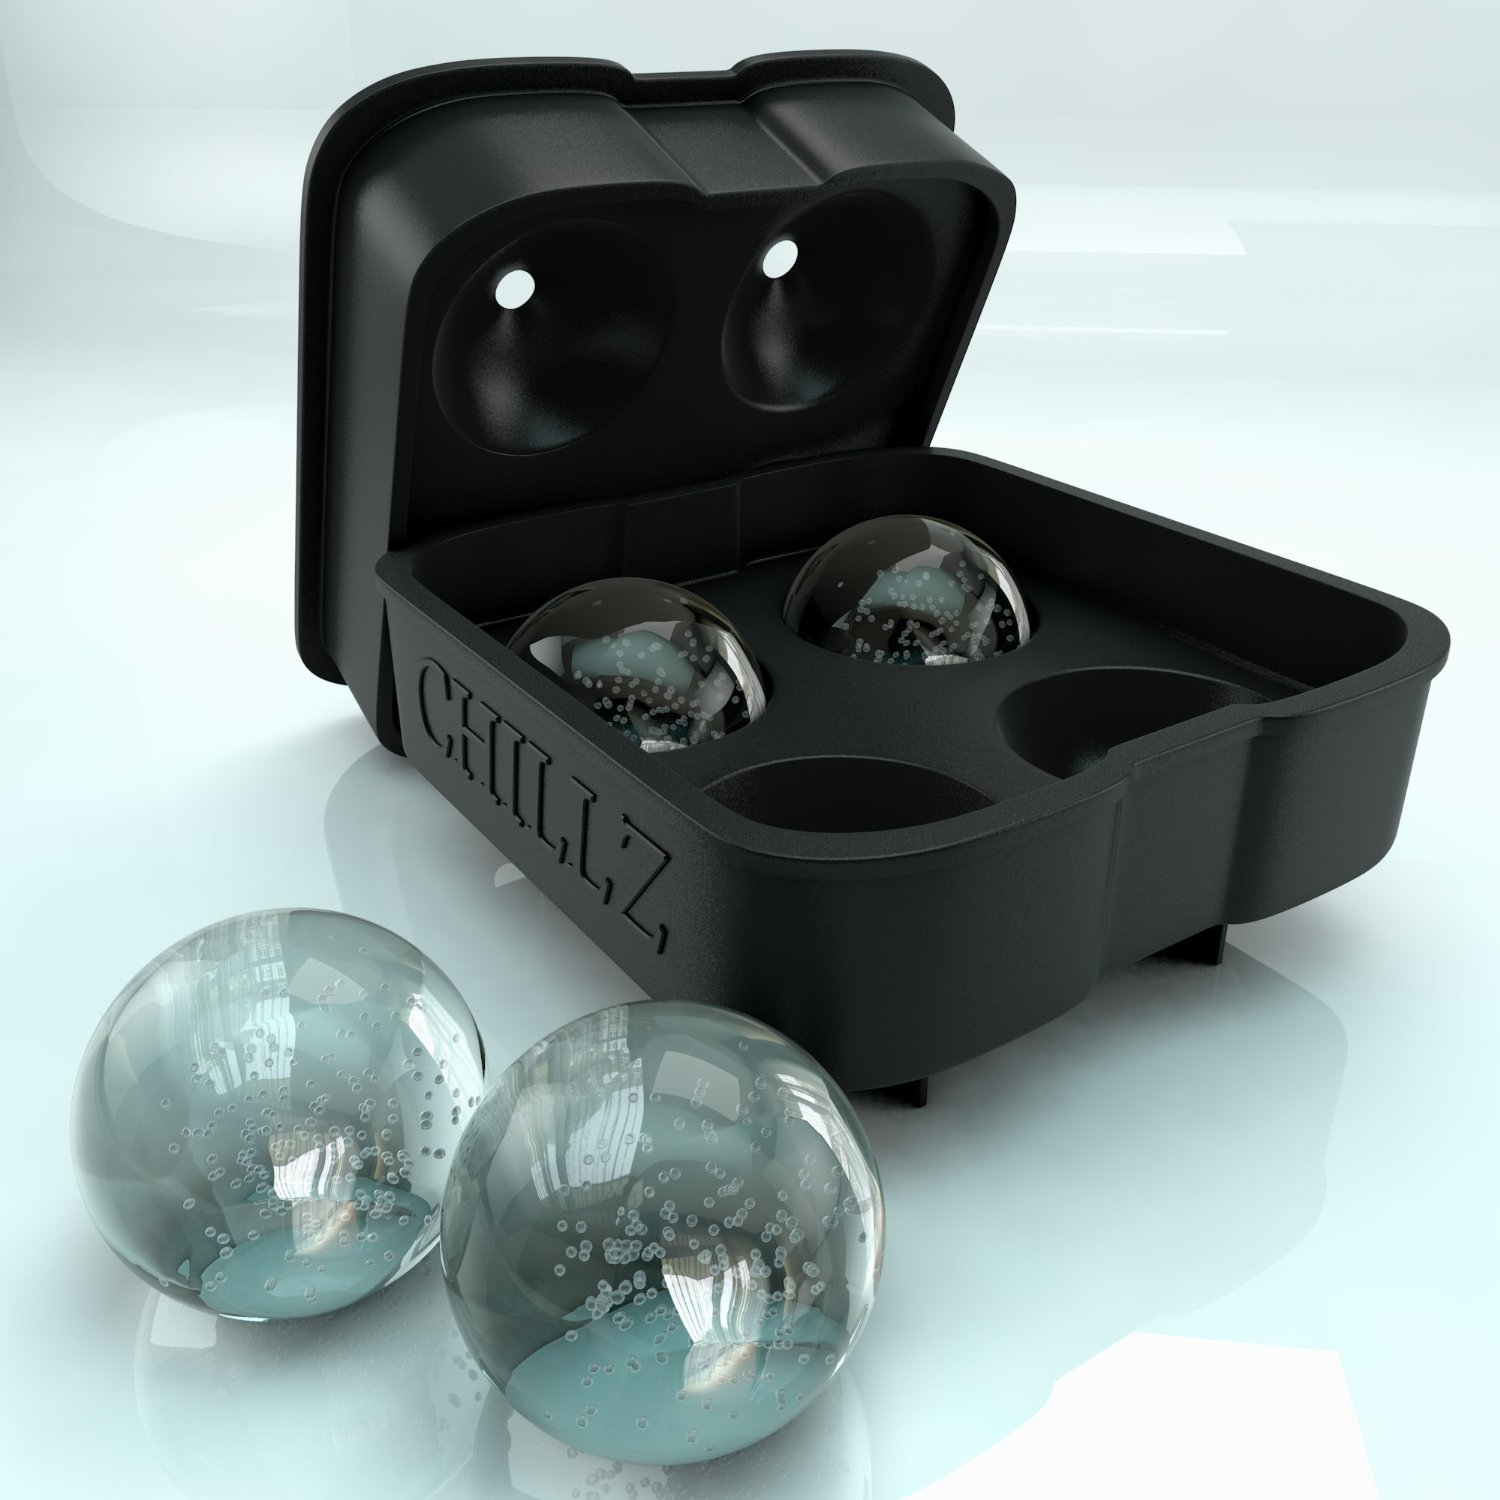 Chillz Ice Ball Maker - Black Flexible Silicone Ice Tray - Molds 4 X 4.5cm Round Ice Ball Spheres (1)